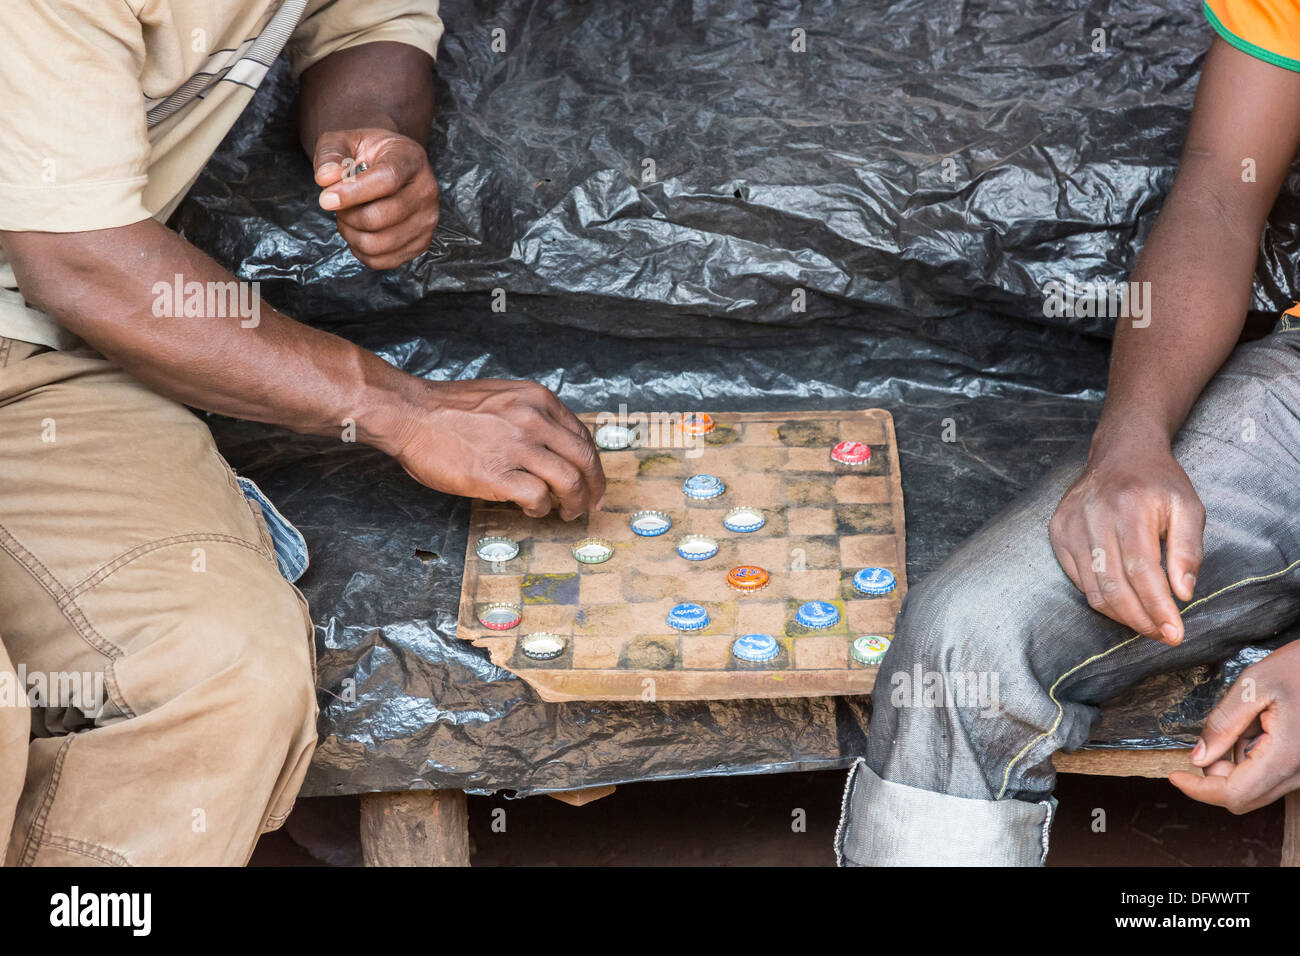 Two local men play draughts (checkers) on a home-made board using soft-drink bottle tops, Maramba Market, Livingstone, Zambia - Stock Image